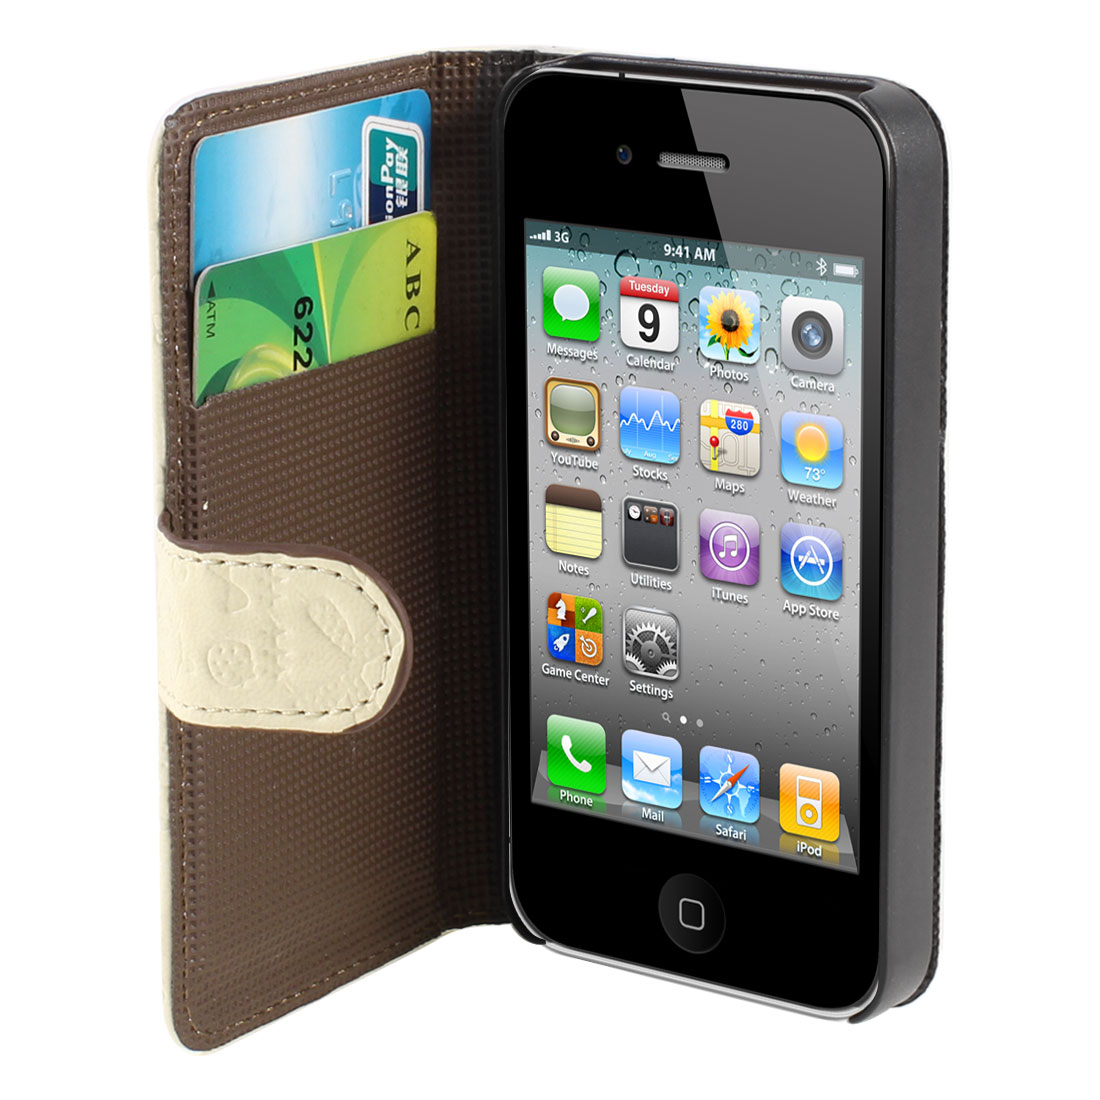 Beige Flip Folio Cute Faerie PU Leather Case Cover for iPhone 4 4S 4GS 4G 4th